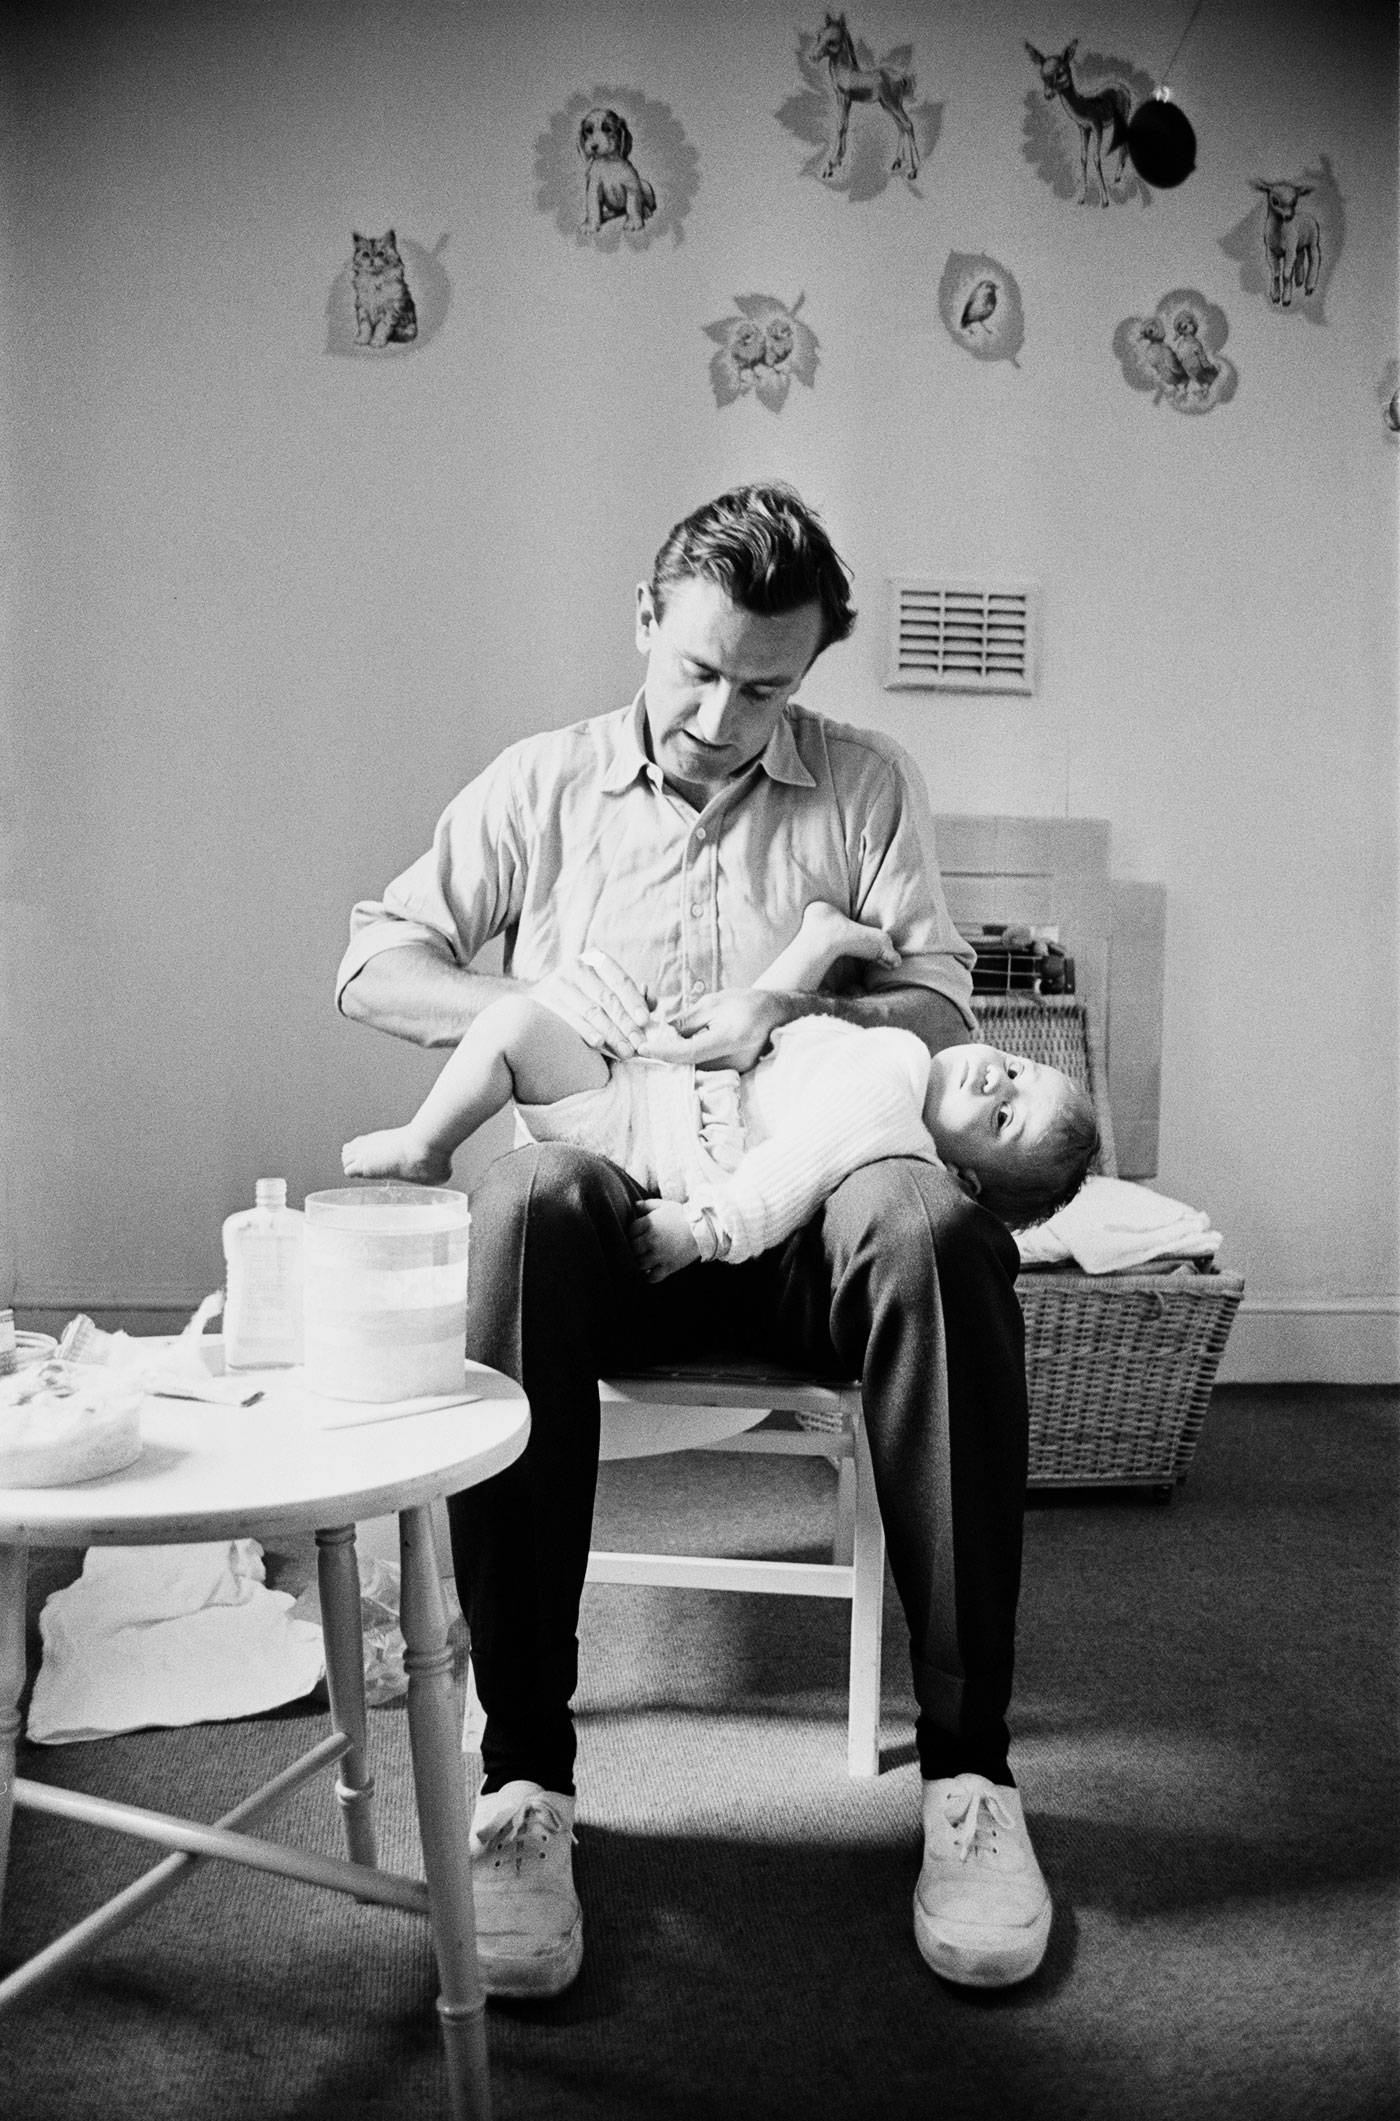 England captain Ted Dexter changes his son's nappy at home, 1963